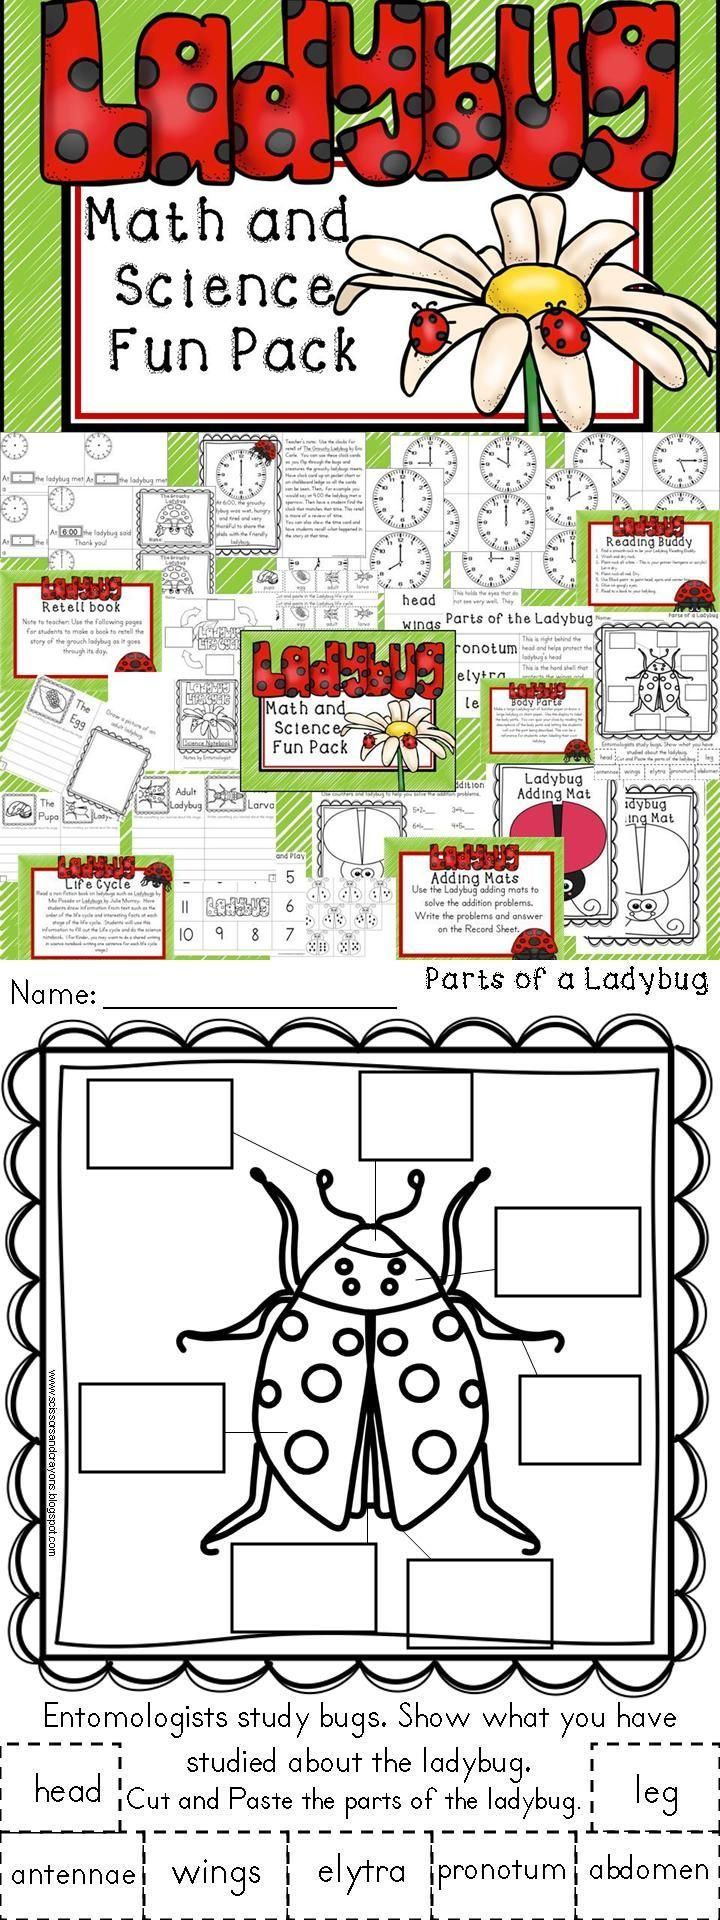 46 Best Ladybugs Images On Pinterest Insects And Crafts Oops Stary Back Pack Get Free Easy Click Ladybird Ladybug Kindergarten 1st Grade Math Science Fun Time Retell With The Grouchy